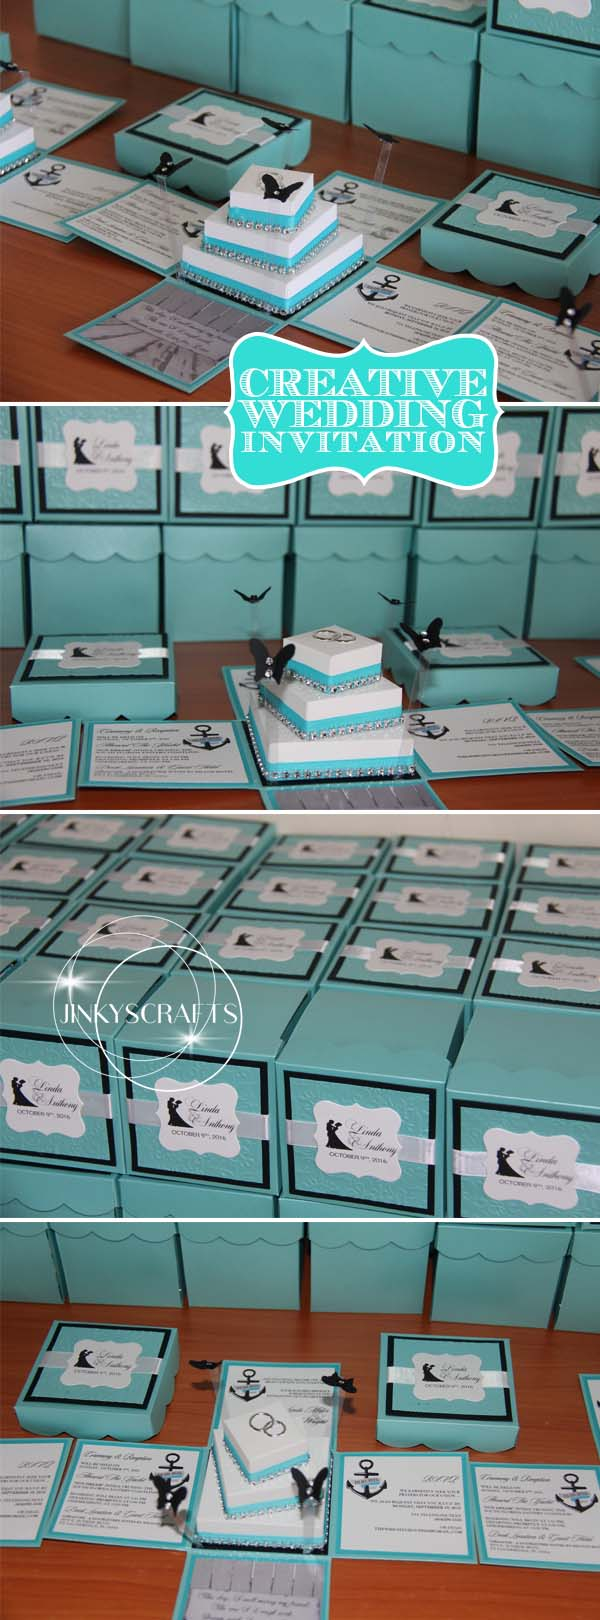 Diy quinceanera invitation exploding box with 3 tier cake diy quinceanera invitation exploding box with 3 tier cake jinkys crafts solutioingenieria Images